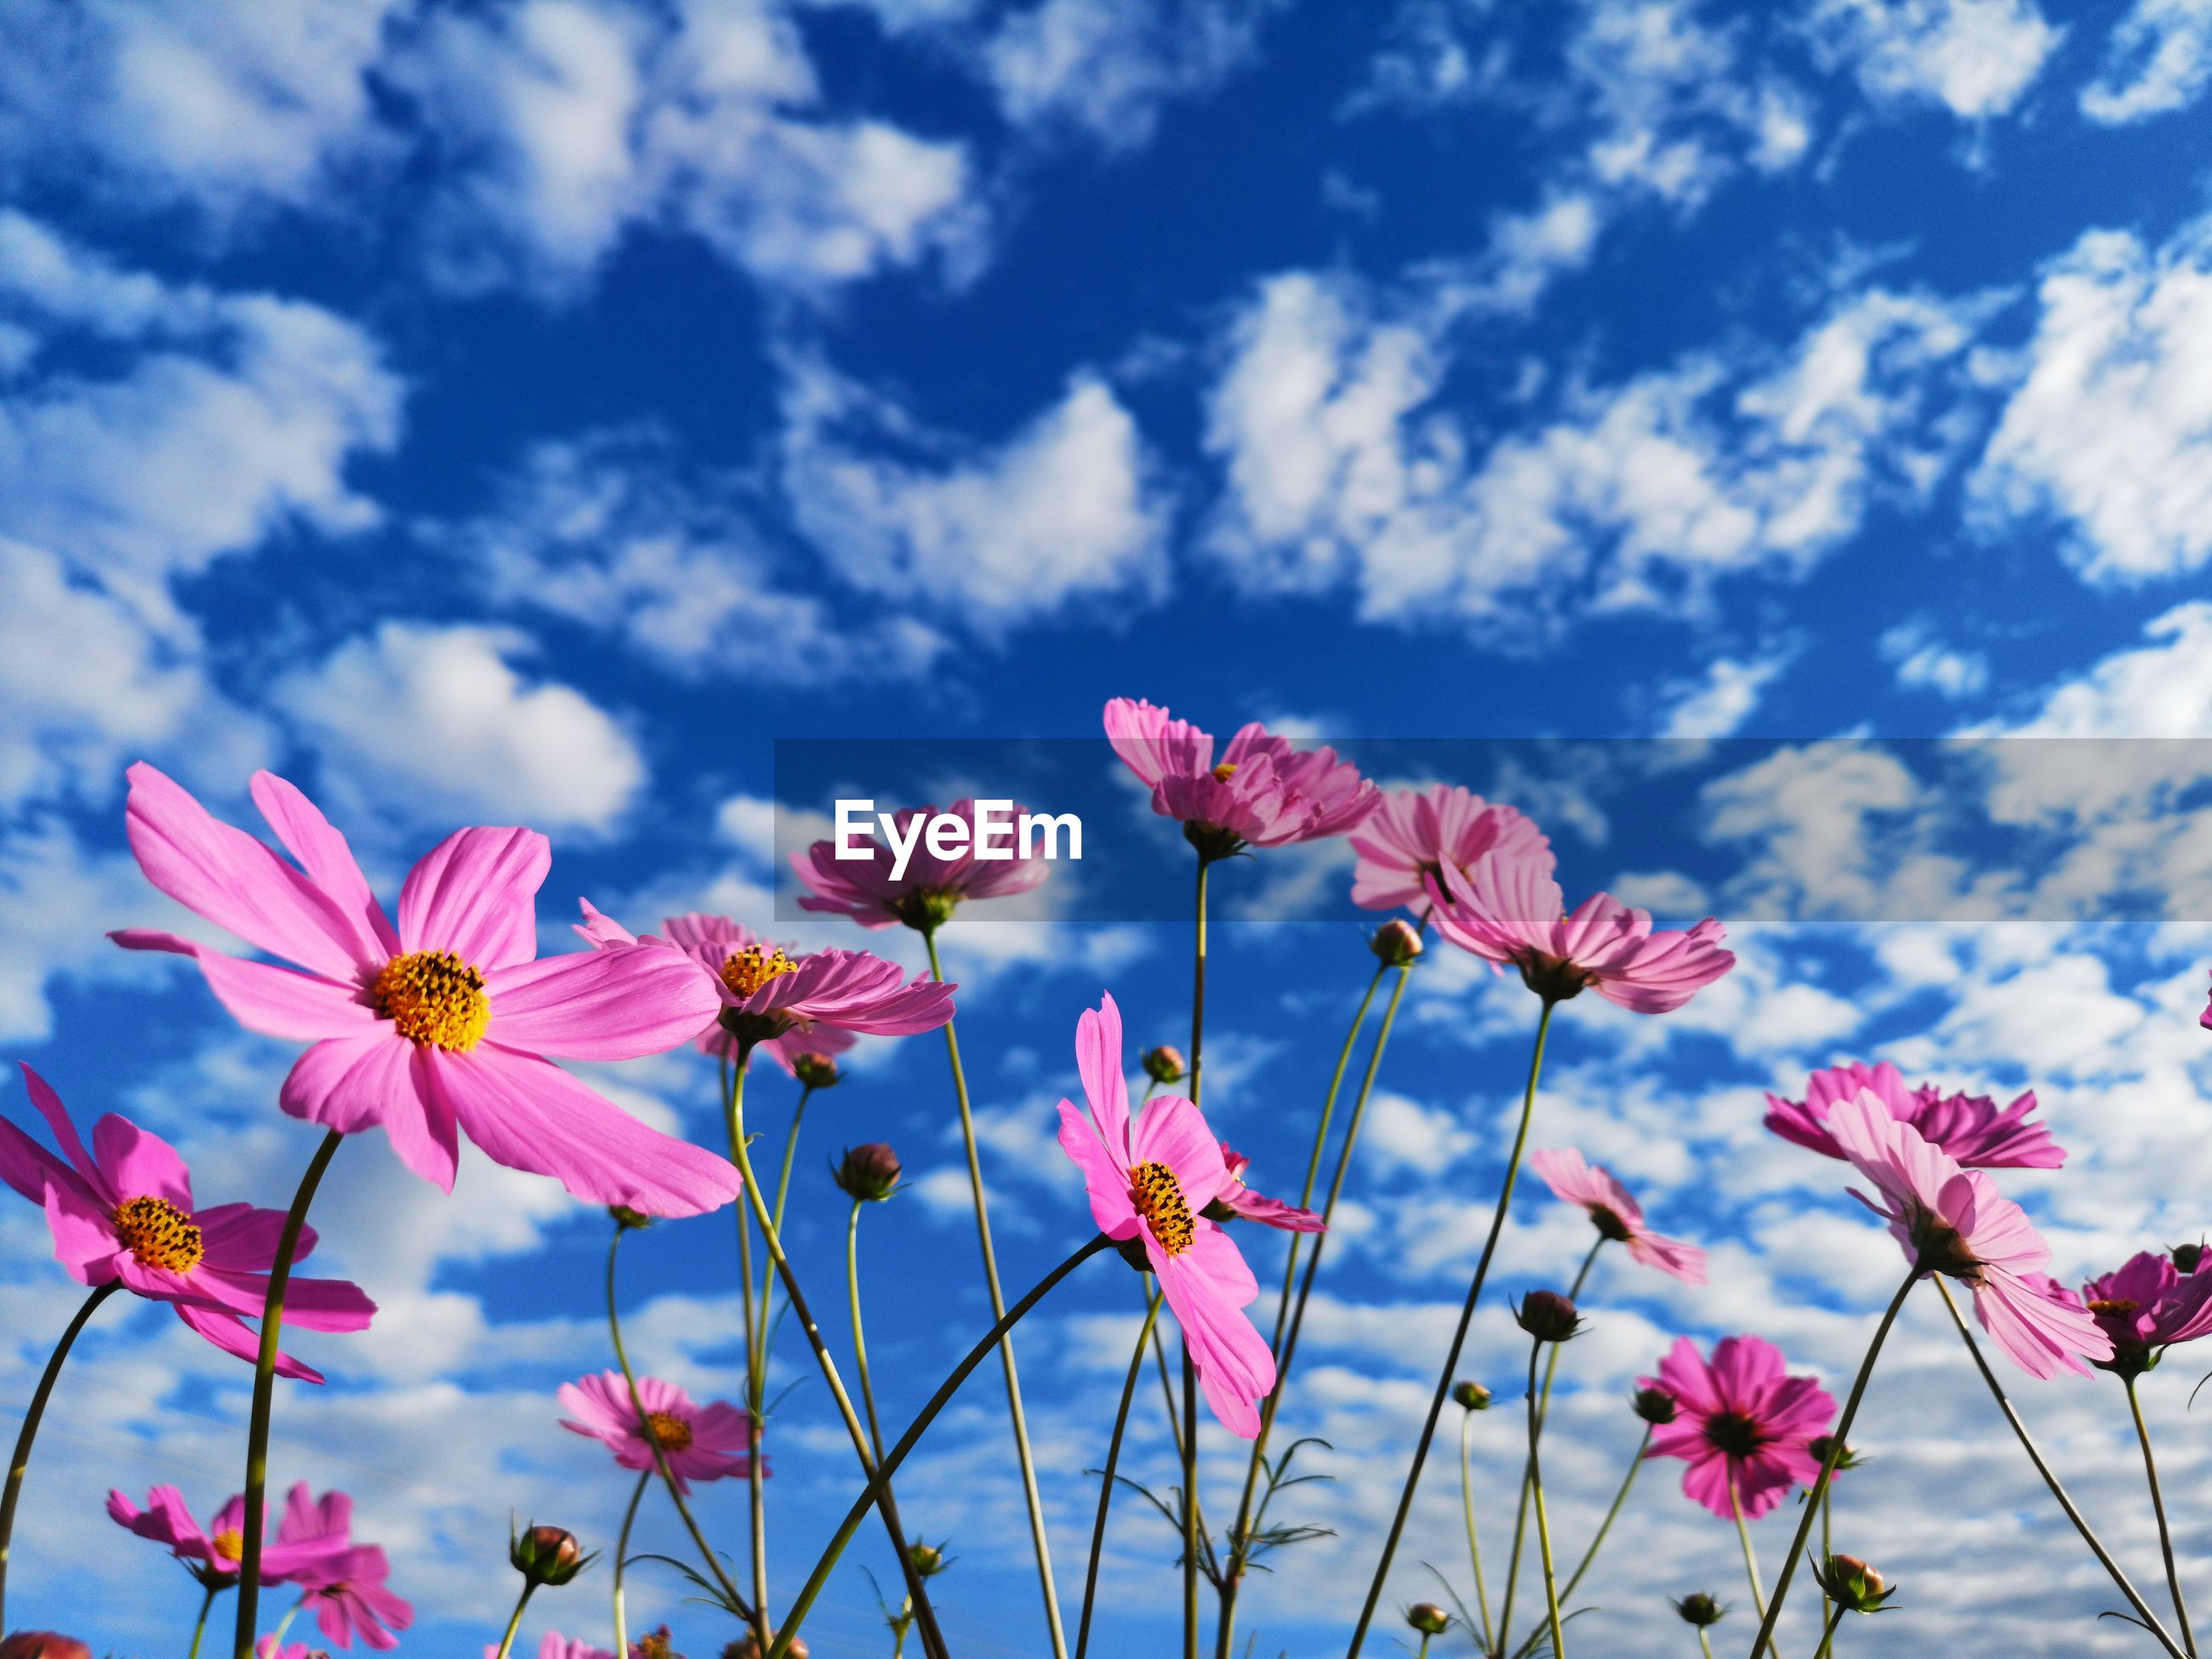 Close-up of pink flowering plants against cloudy sky